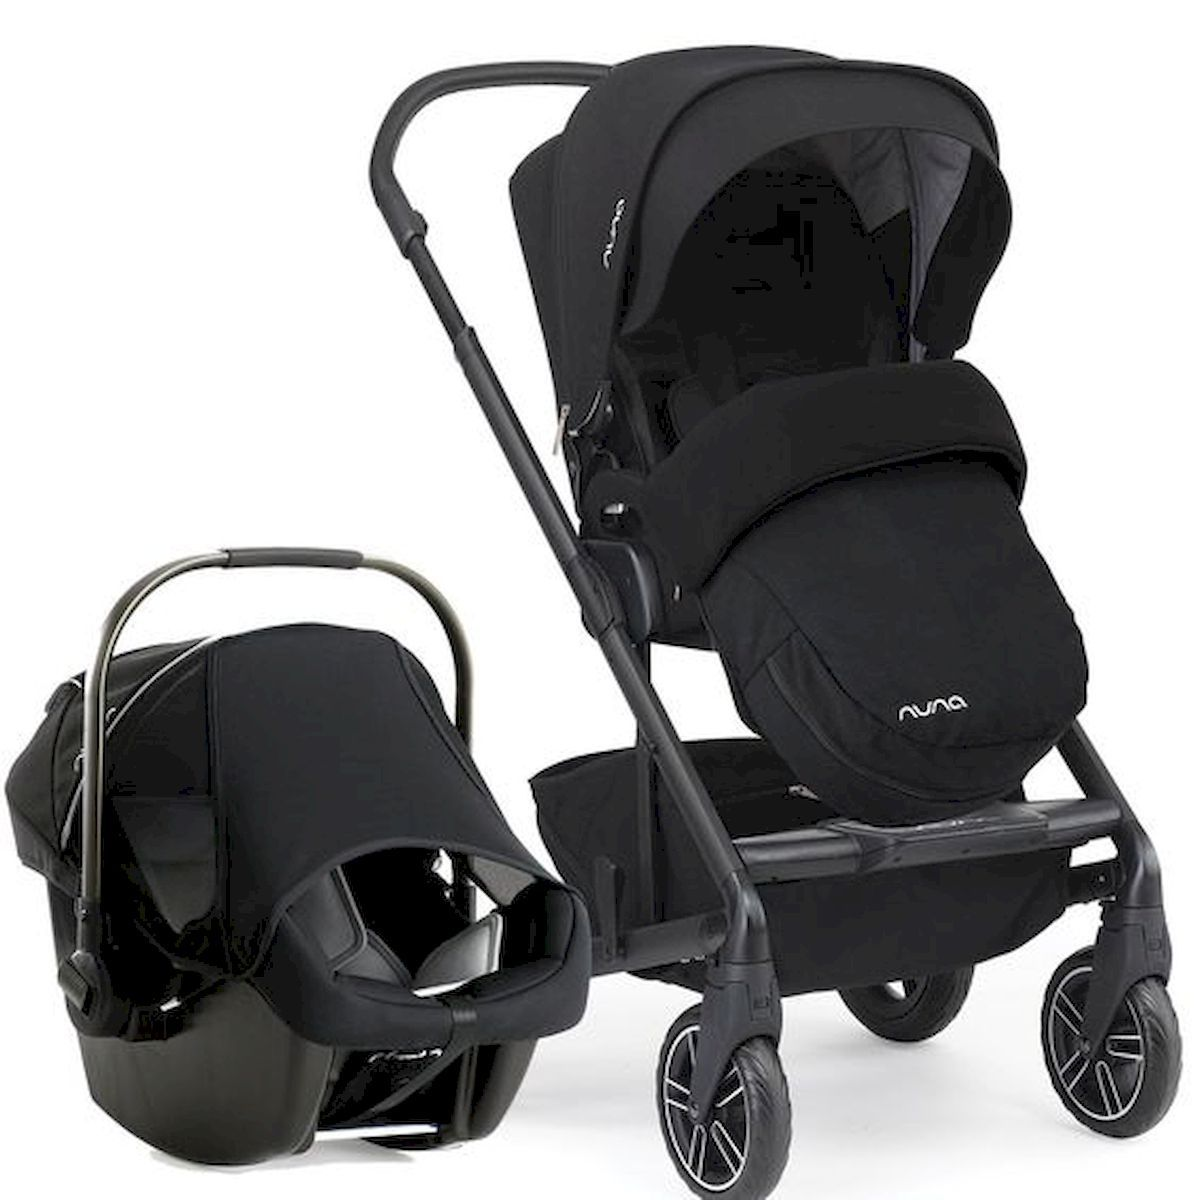 Gorgeous 50 Best Baby Stroller Ideas for Your Baby source ...